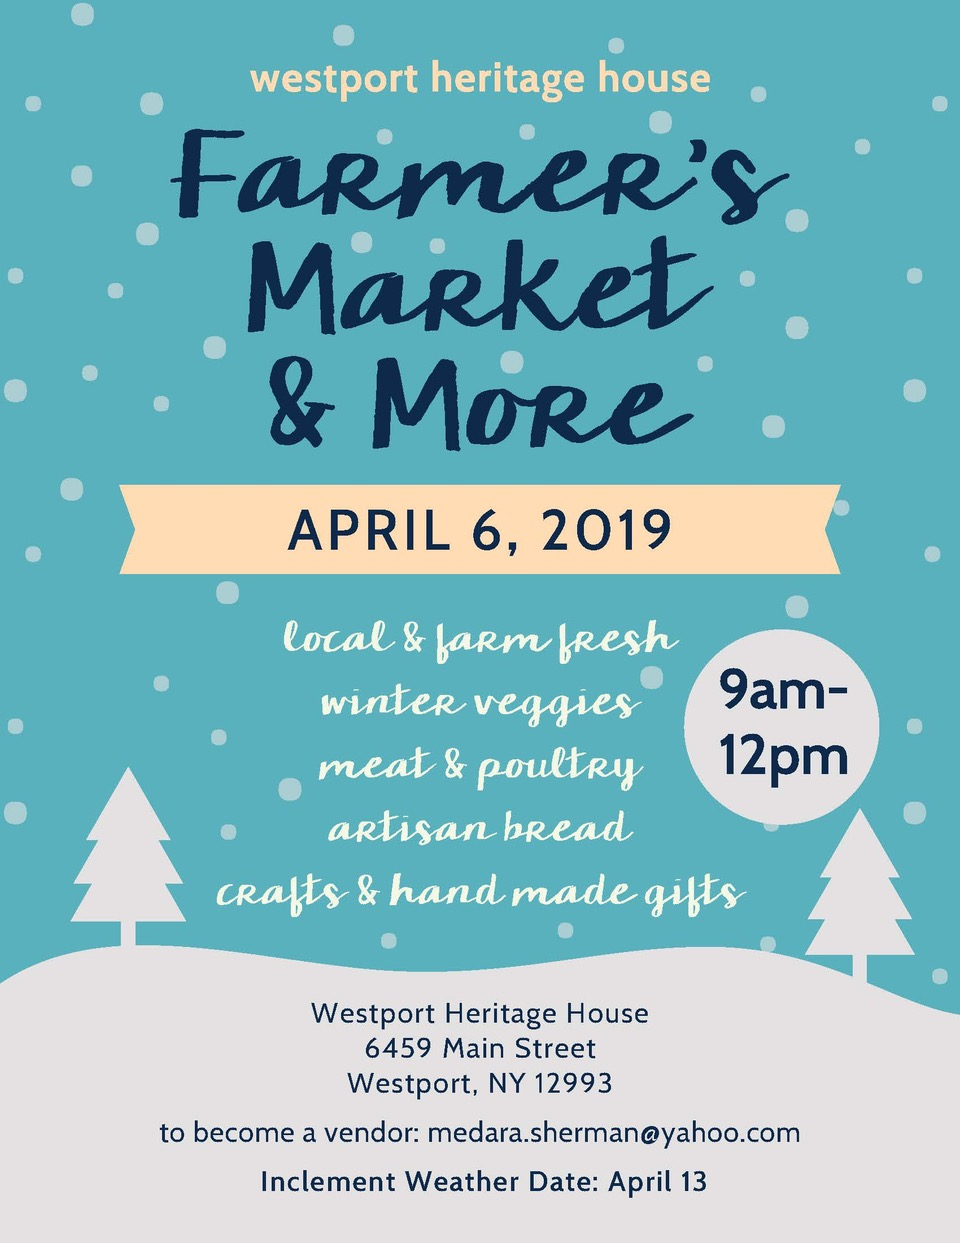 HH_FarmersMarket_Apr2019.jpg